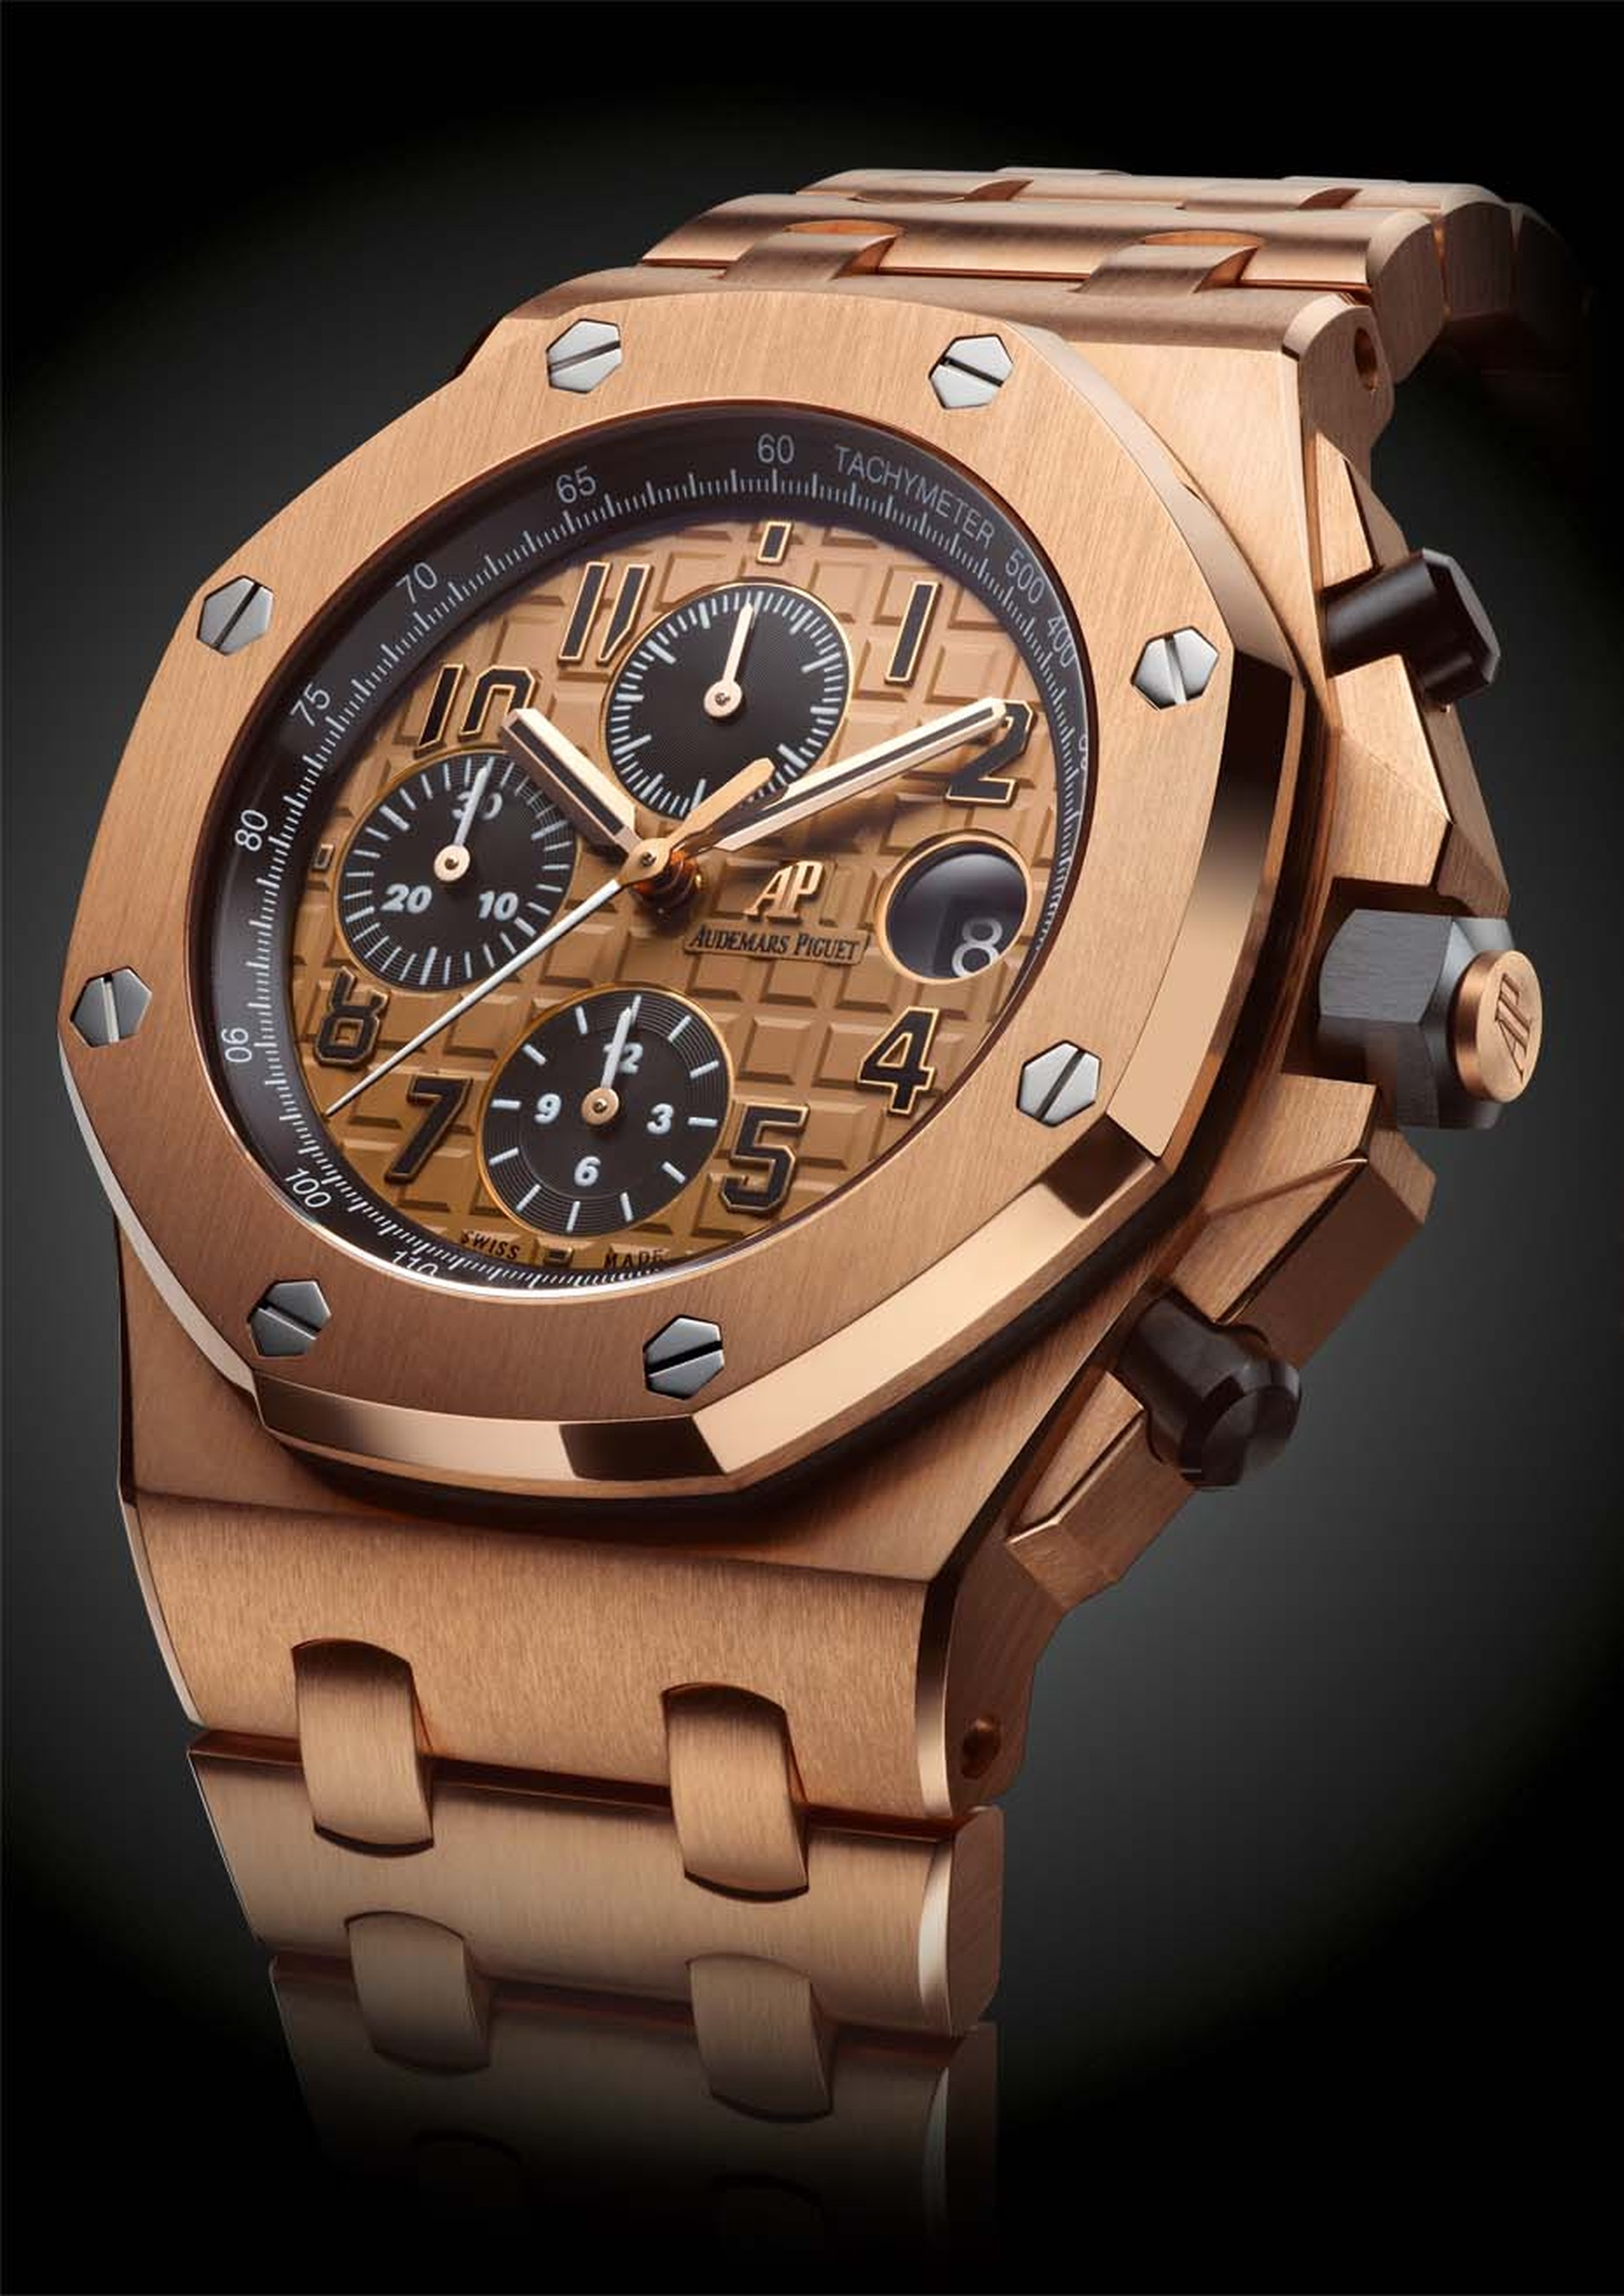 Audemars Piguet Royal Oak Offshore chronograph watch in pink gold with a 'Méga Tapisserie' pattern dial and pink gold bracelet (£50,400).